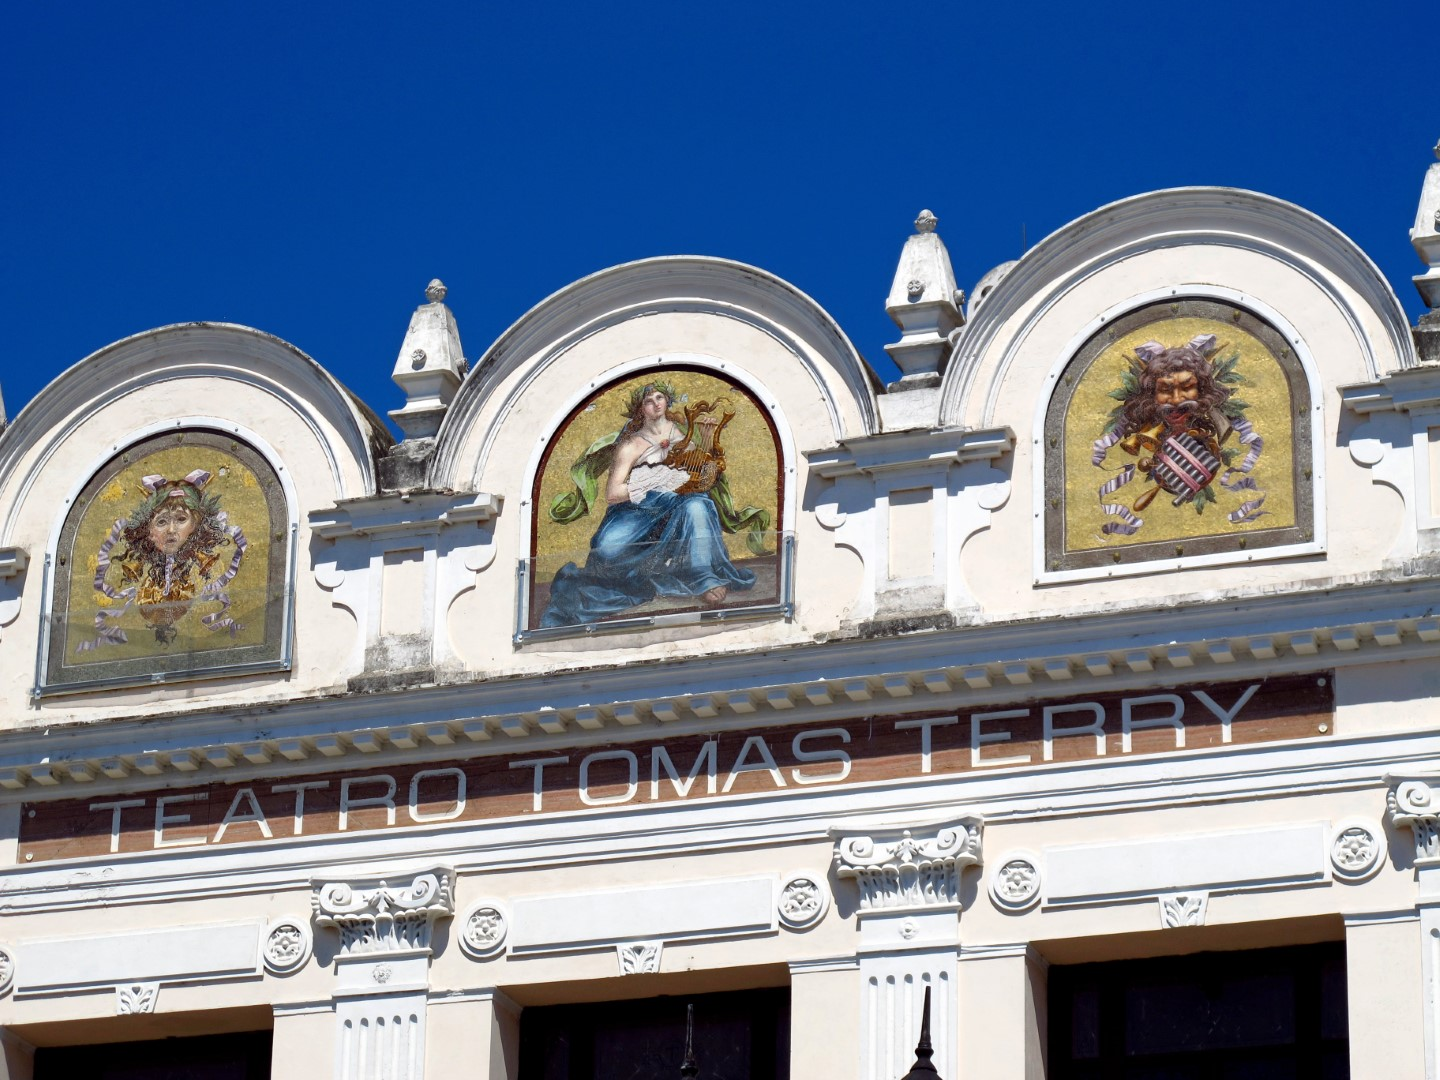 The Teatro Tomas Terry sign in Cienfuegos, Cuba